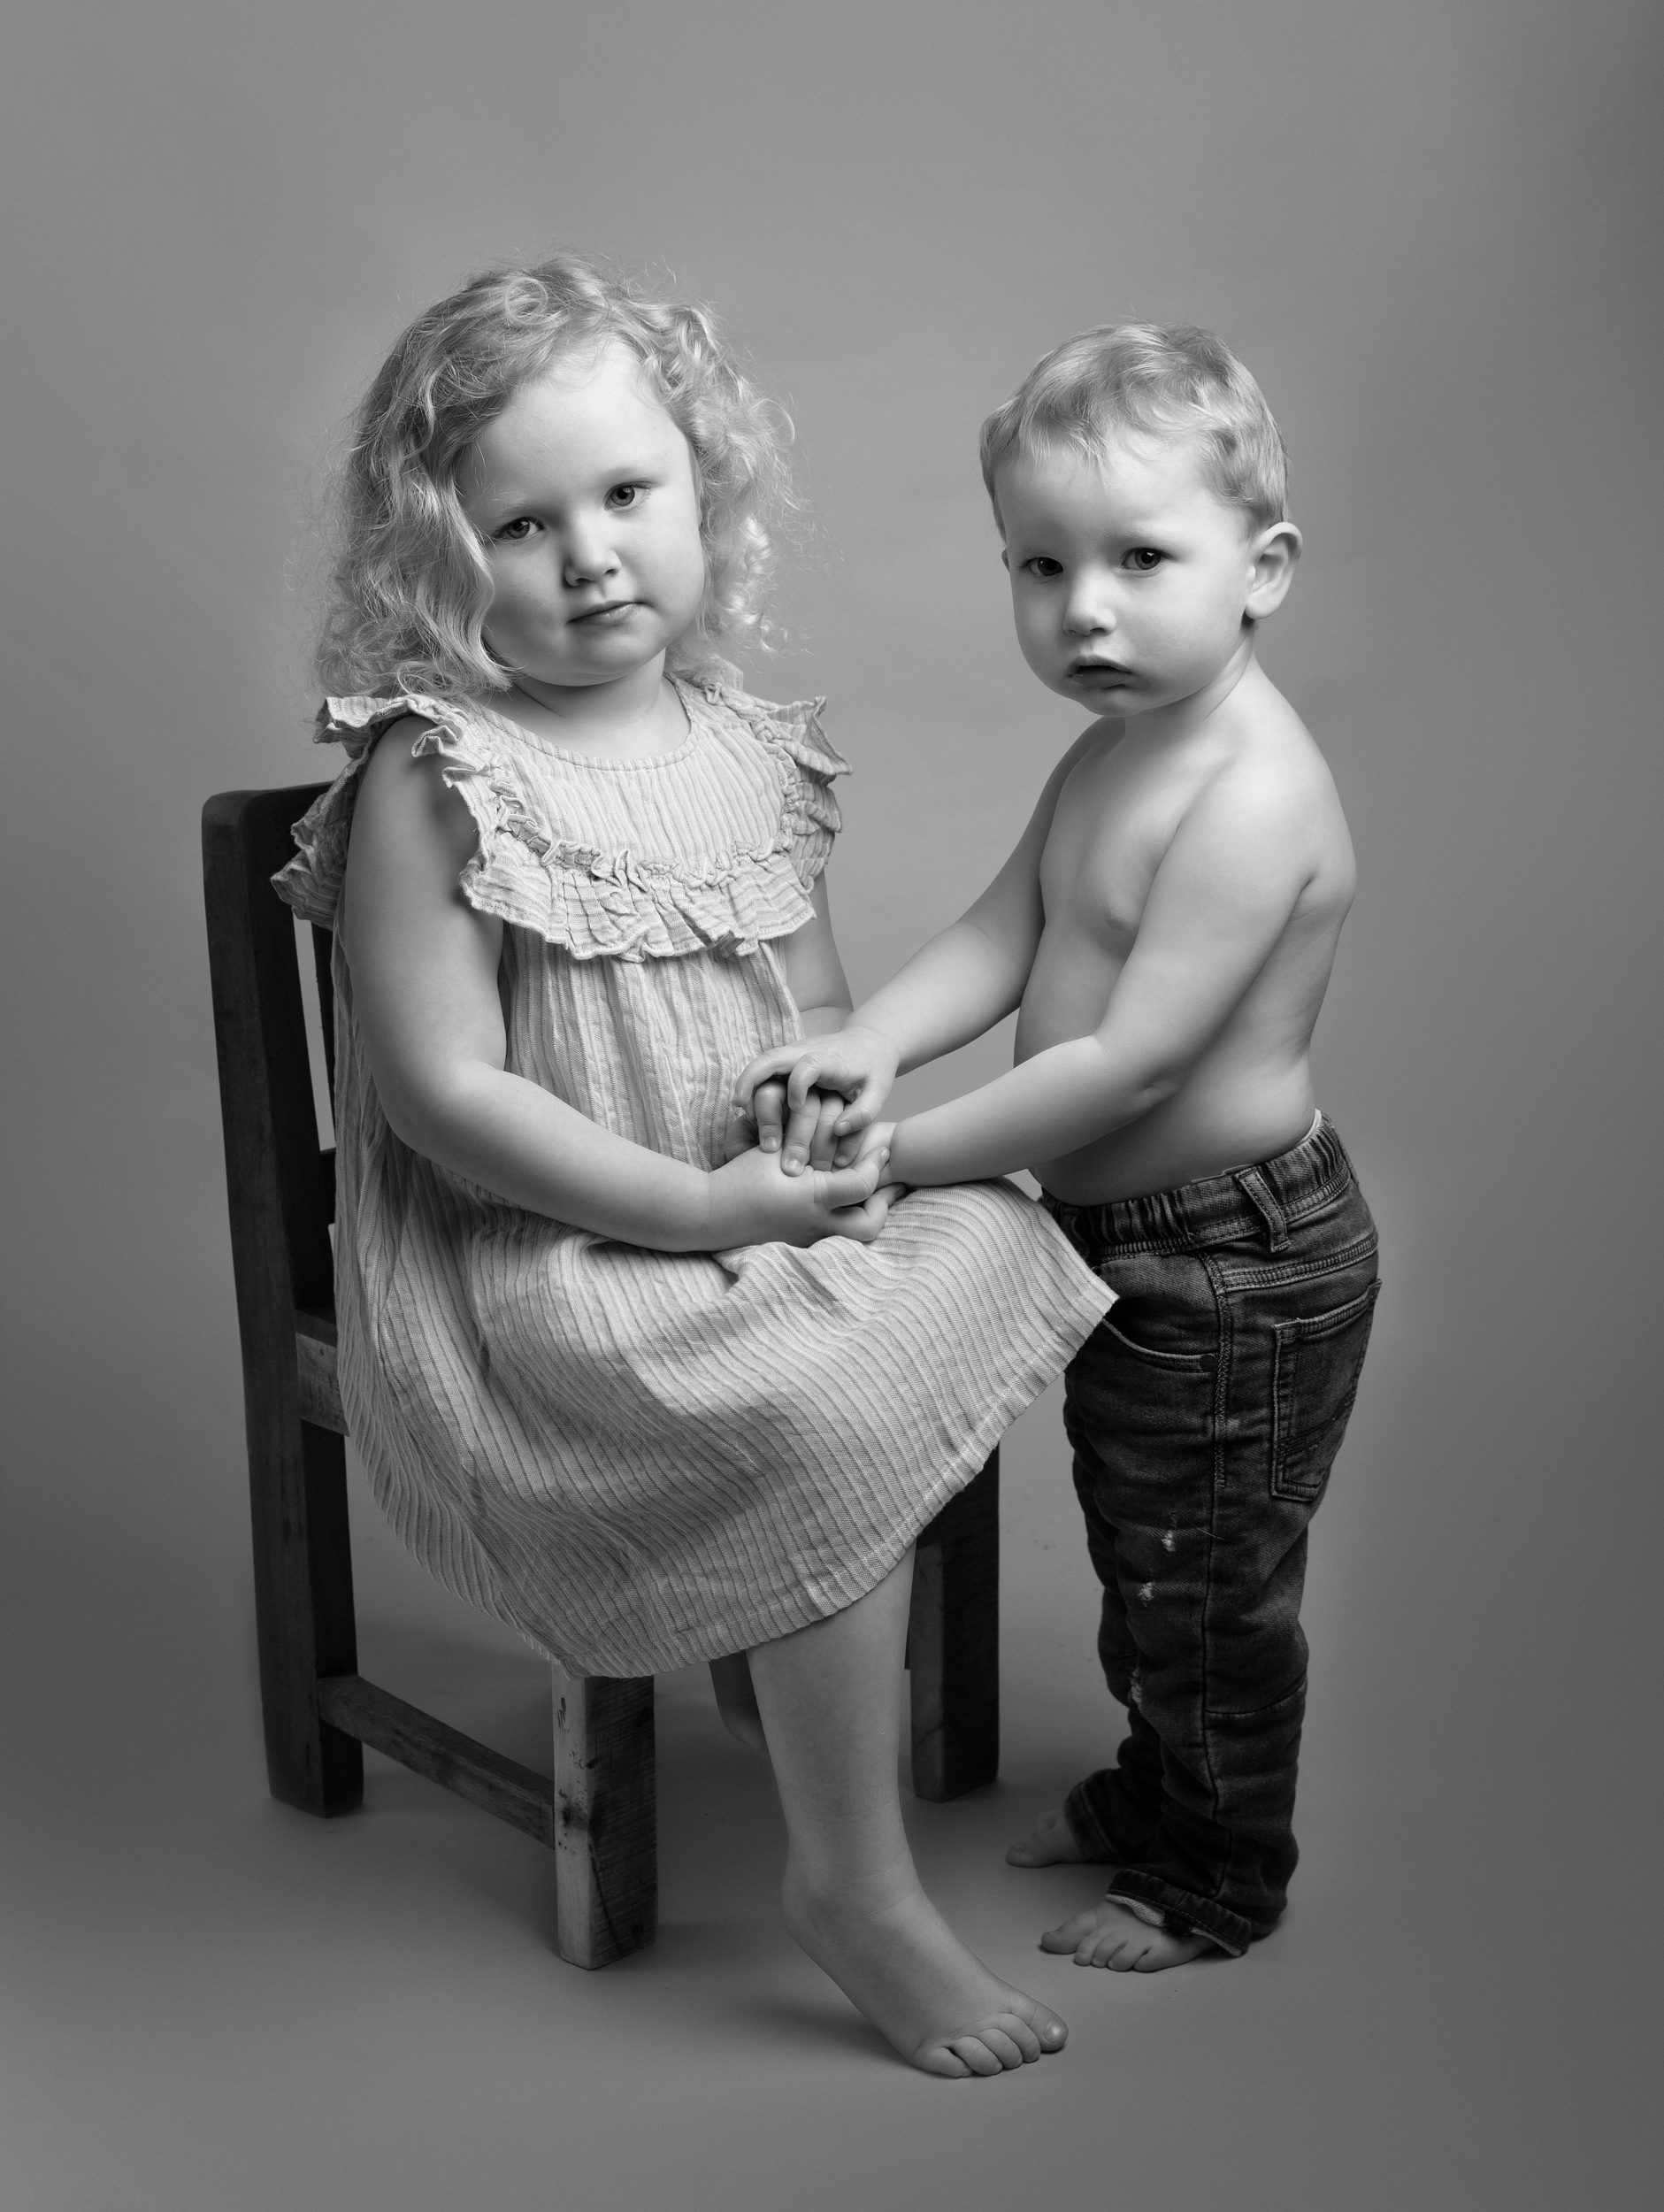 Brother and sister pose together at their Family Portrait photo shoot in Cheshire